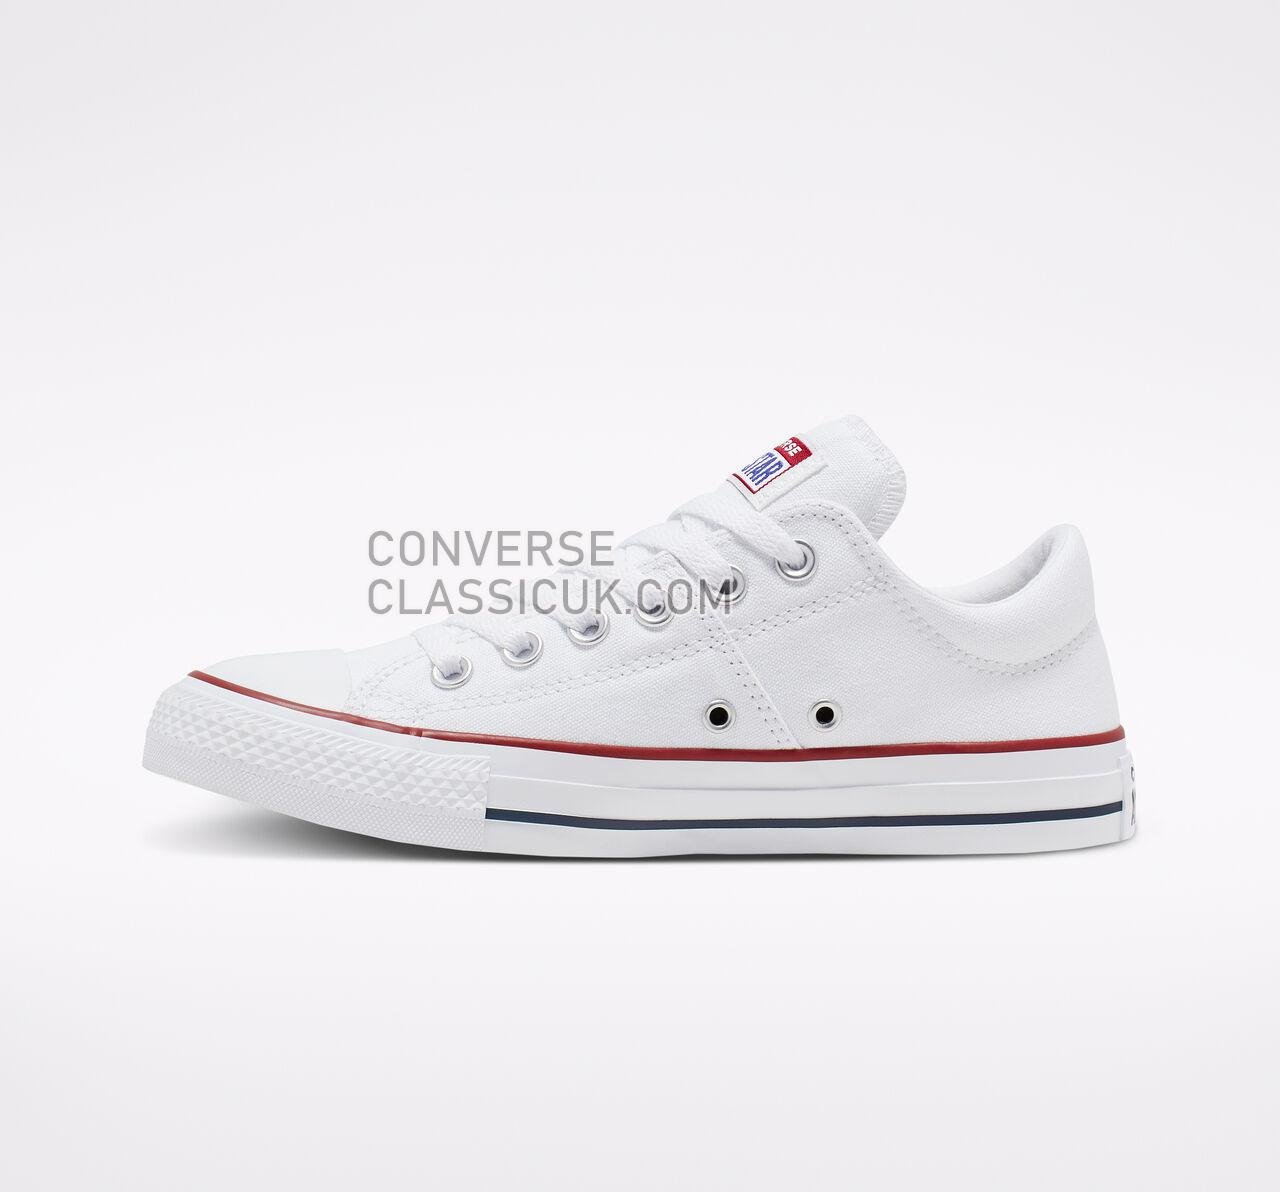 Converse Chuck Taylor All Star Madison Low Top Womens 563509F White/White/White Shoes